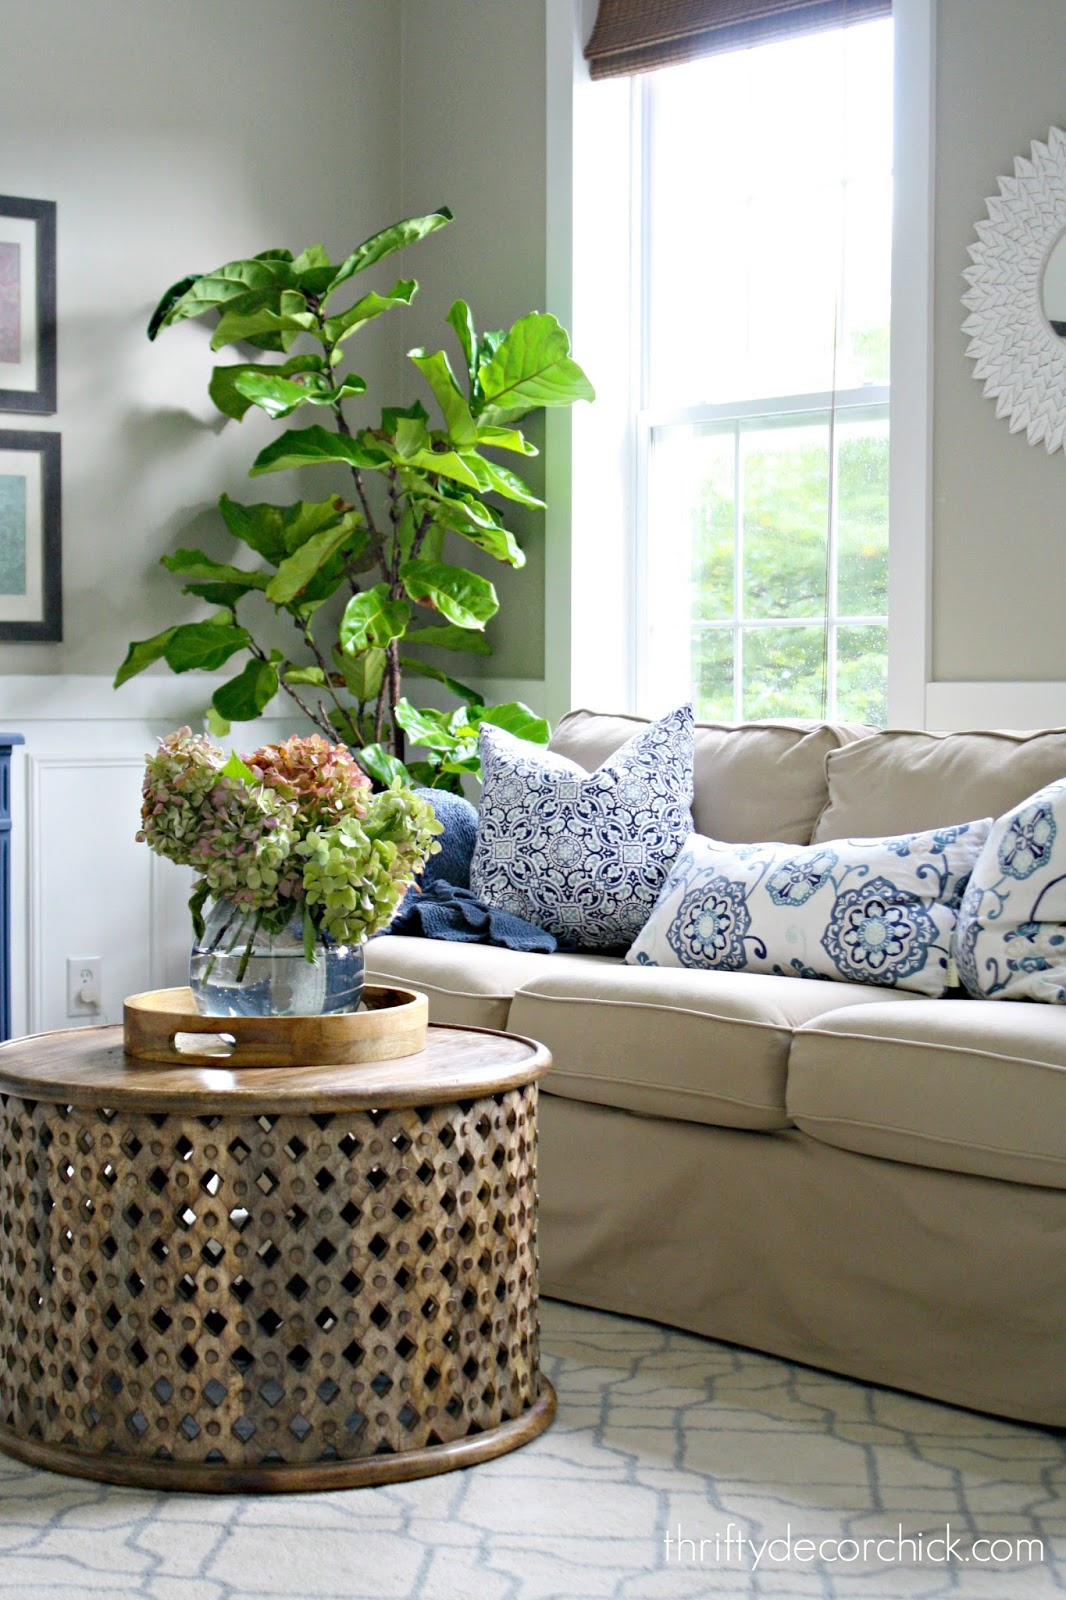 How to not kill your fiddle leaf plant from thrifty decor for Thrifty decor